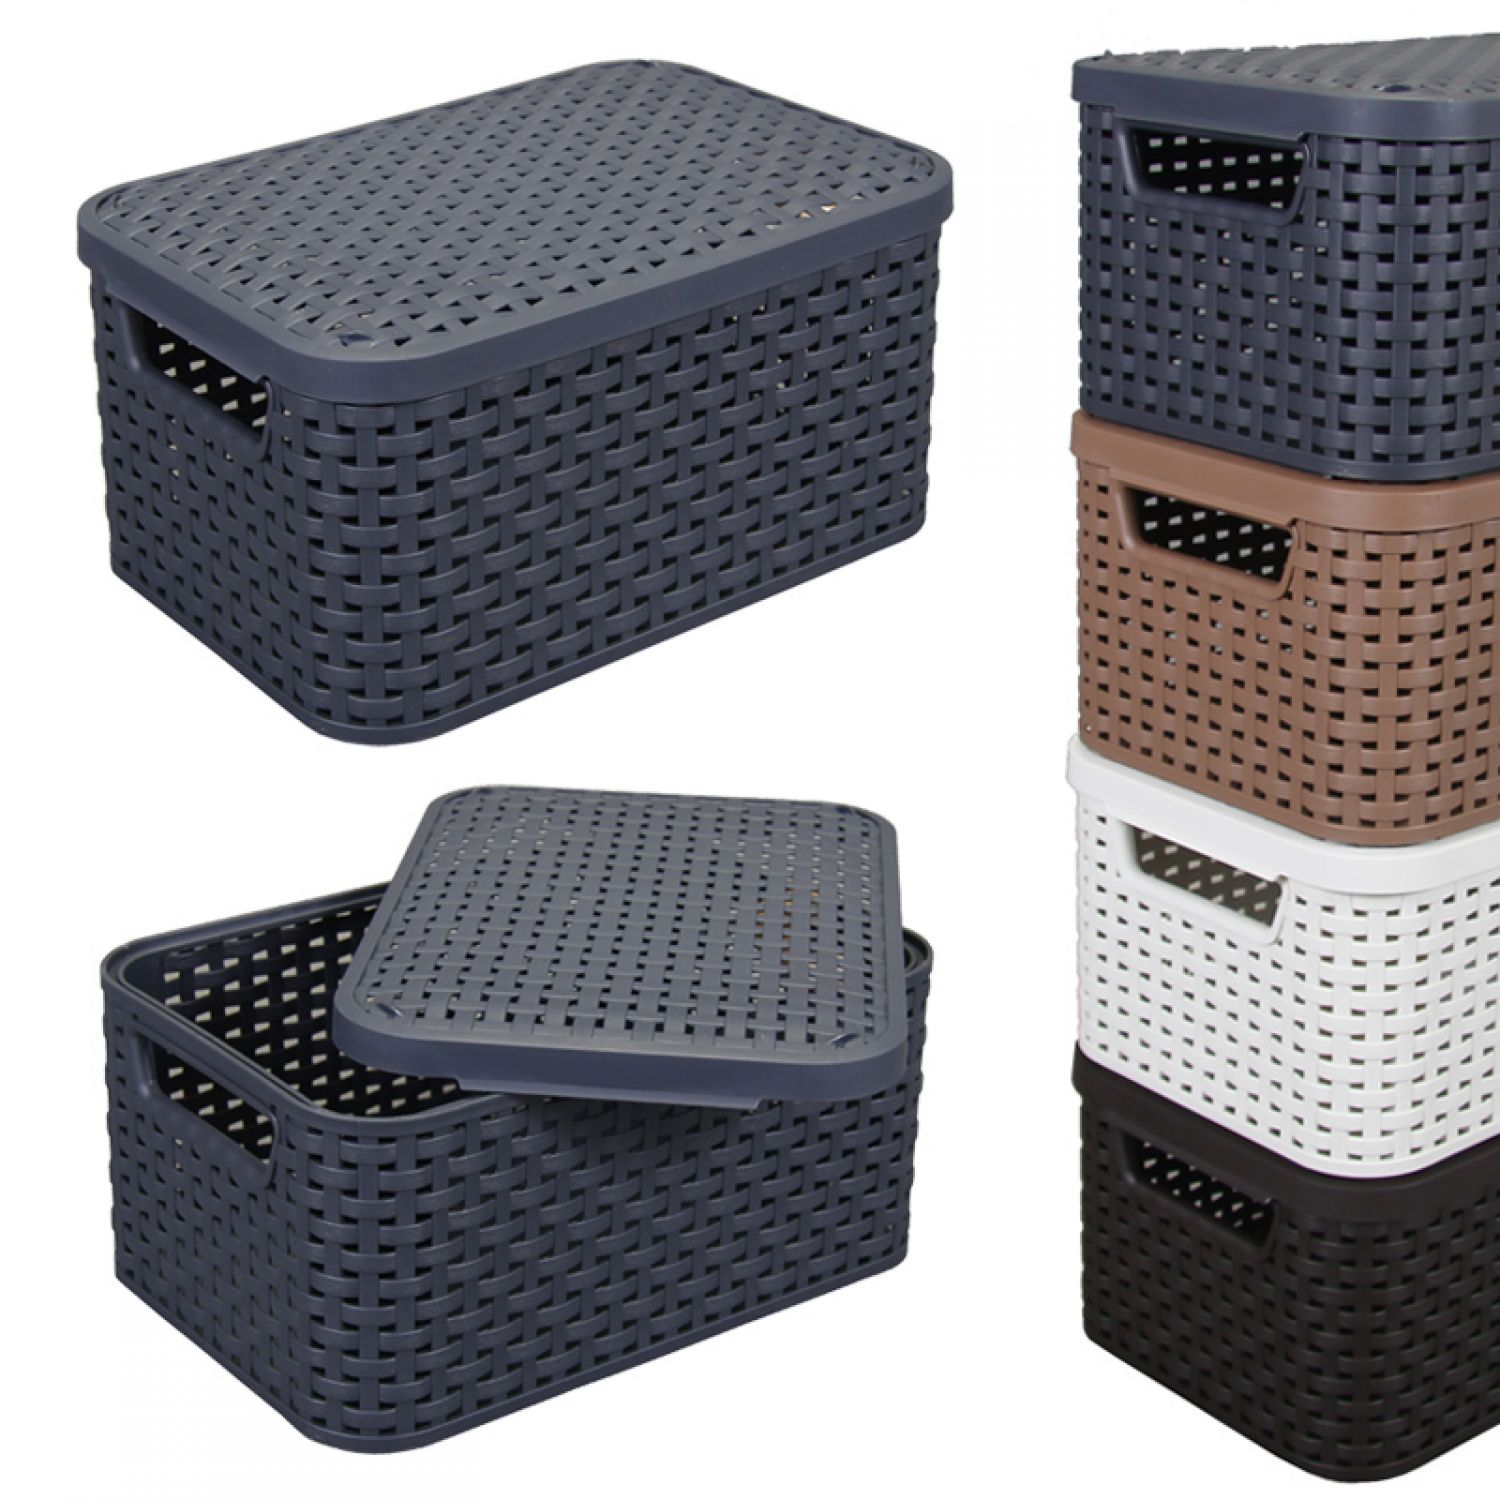 rattan korb s mit deckel 29x19cm kunststoff aufbewahrungsbox dekobox box kiste ebay. Black Bedroom Furniture Sets. Home Design Ideas